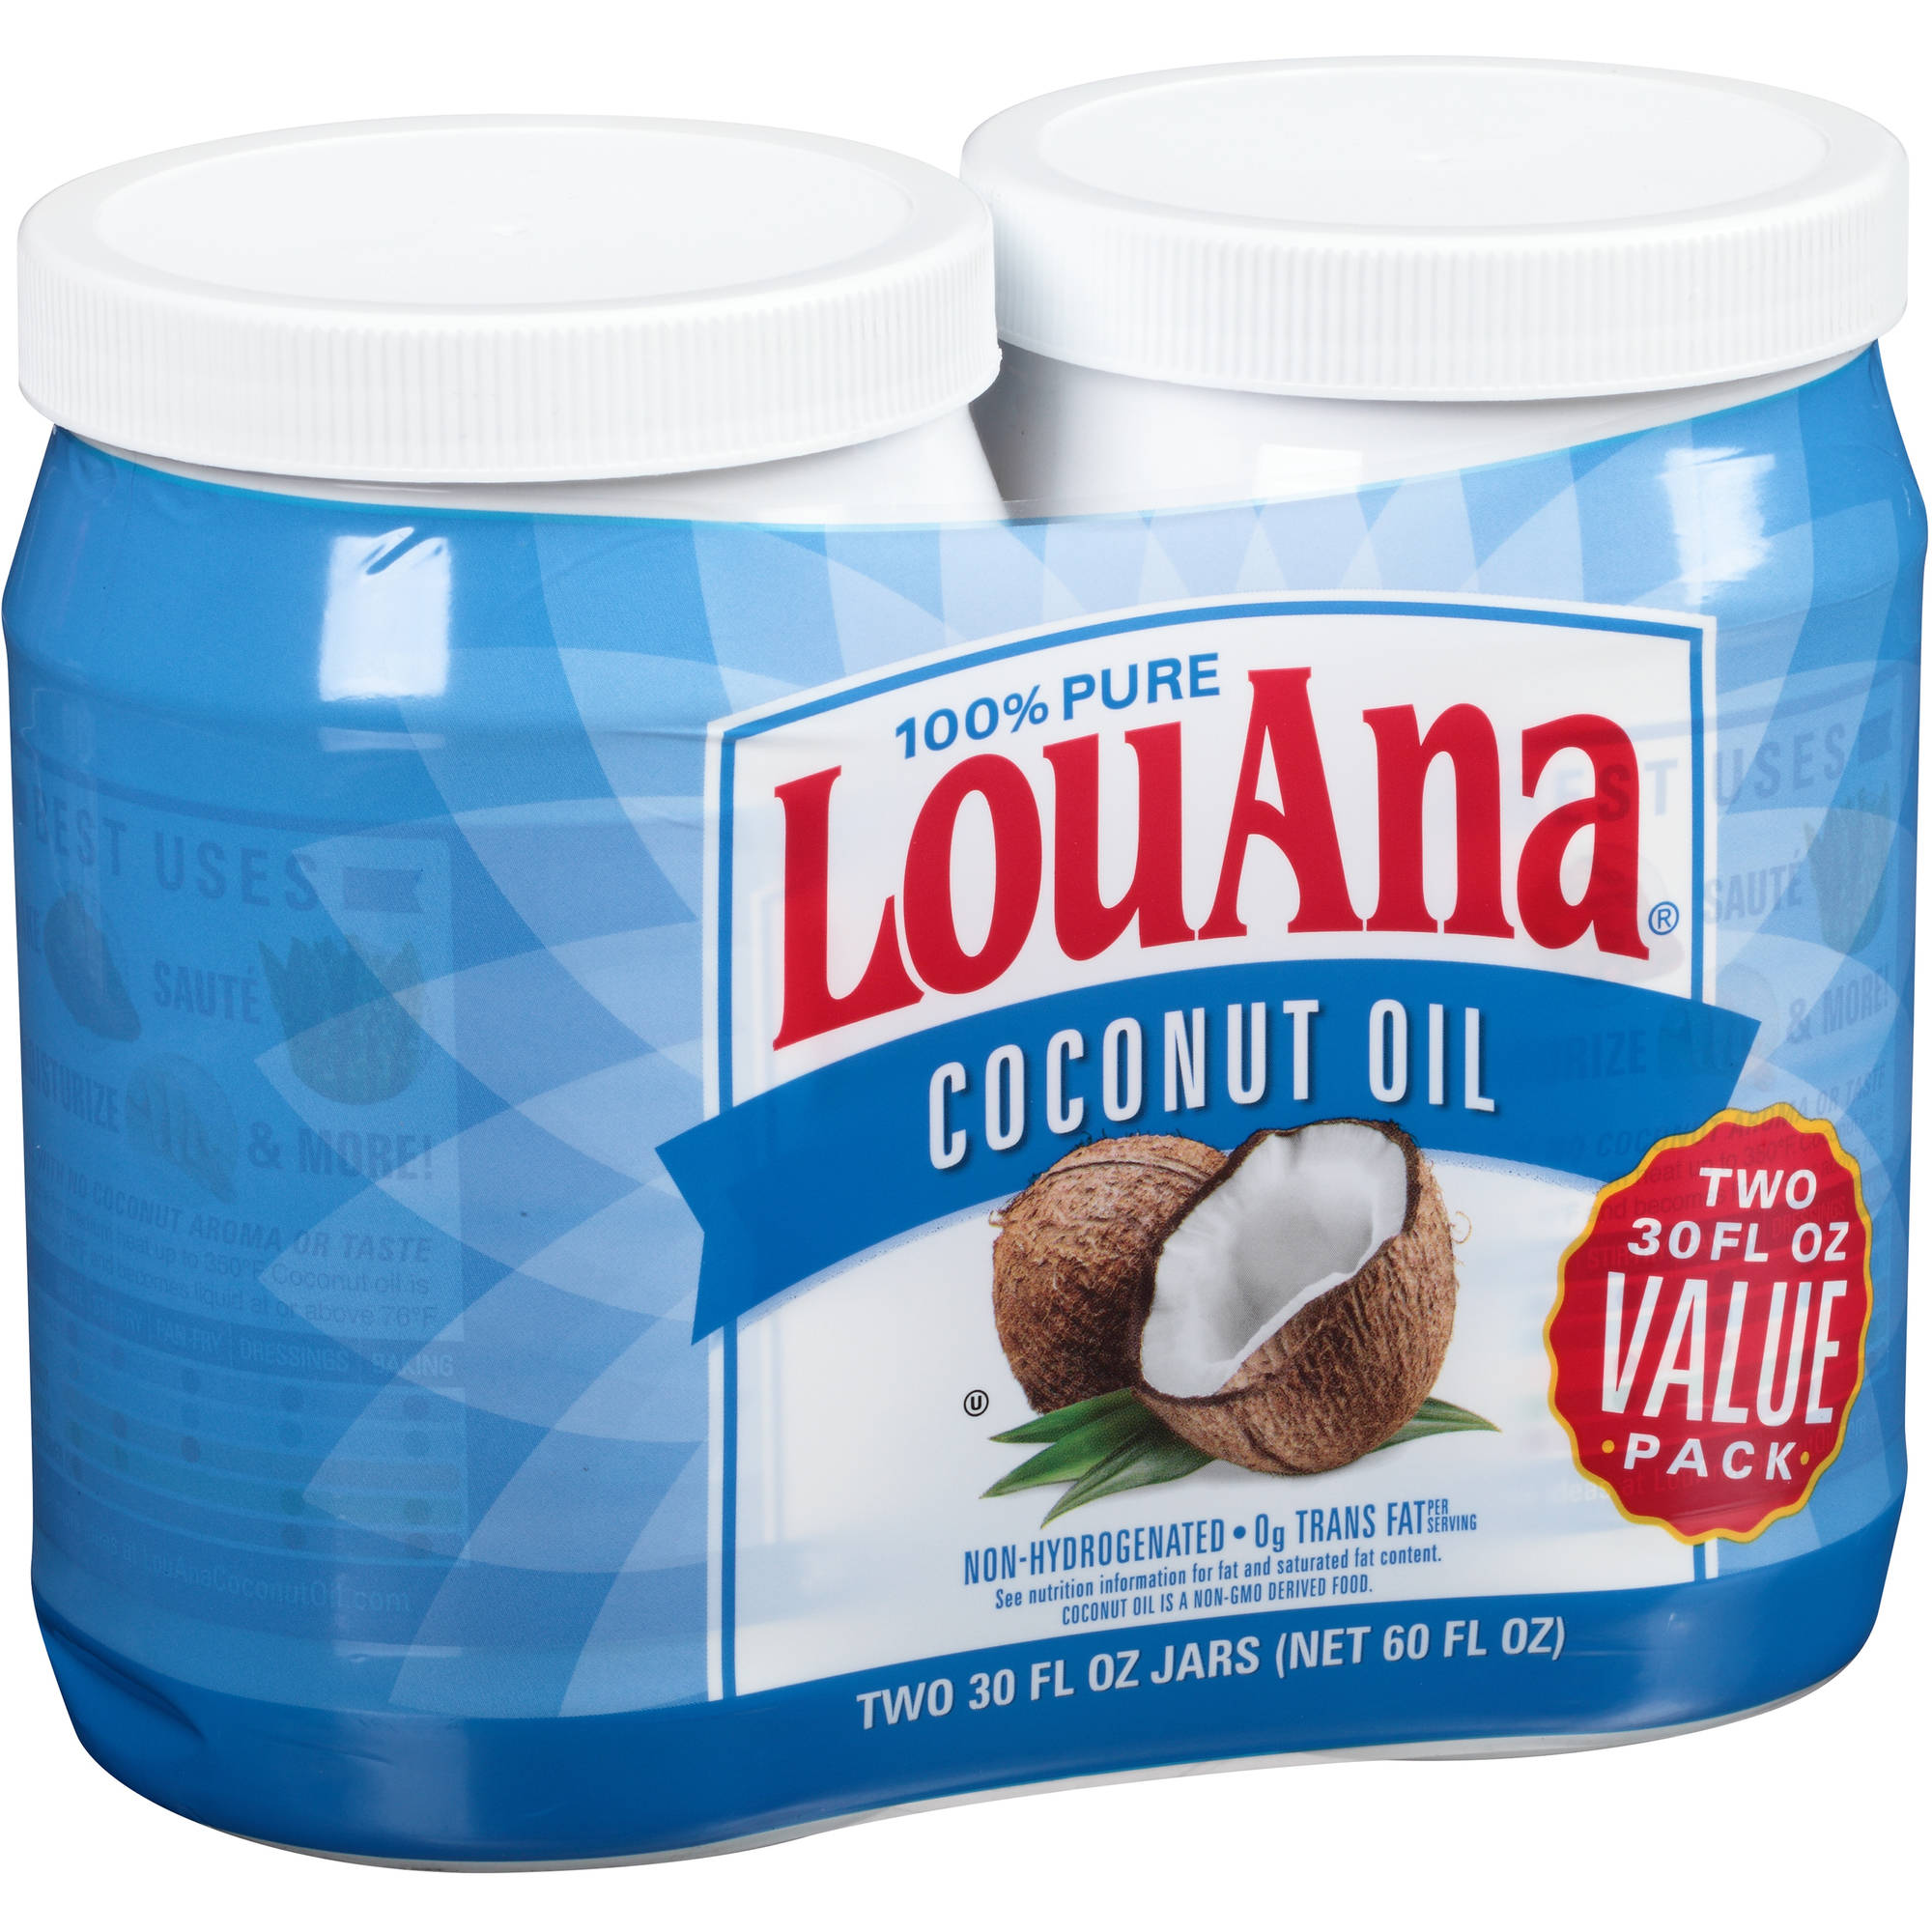 LouAna 100% Pure Coconut Oil, 30 fl oz, (Pack of 2)